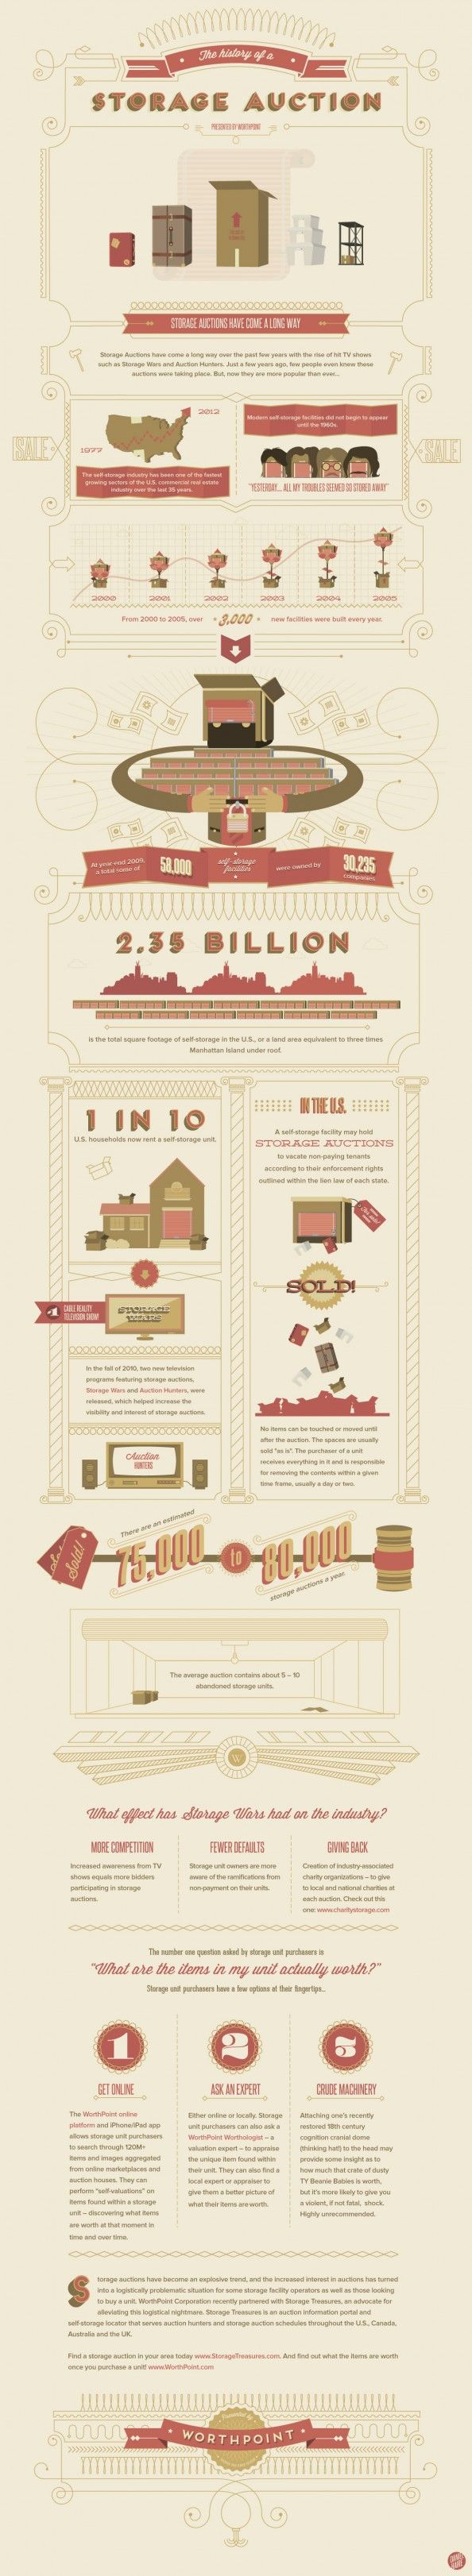 The History of a Storage Auction #infographics